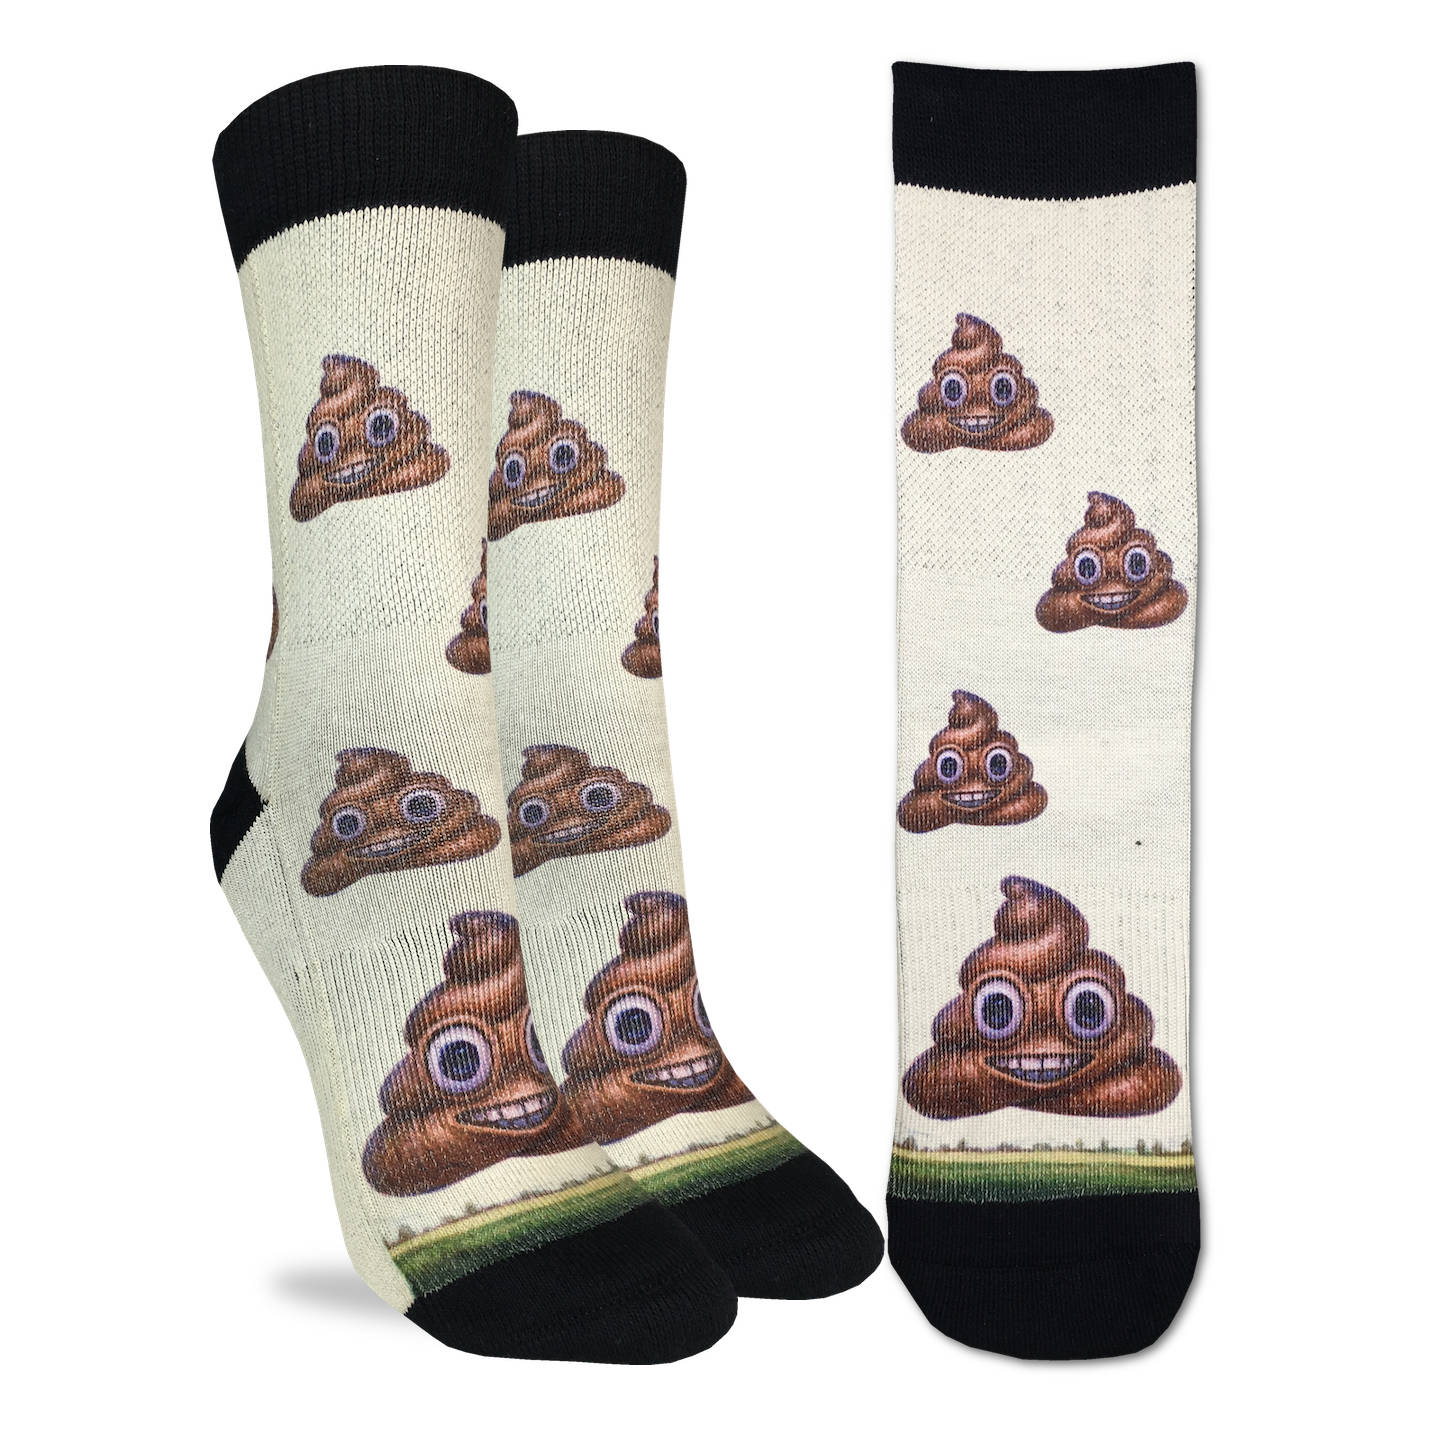 Women's Piles of Poop Socks - Good Luck Sock